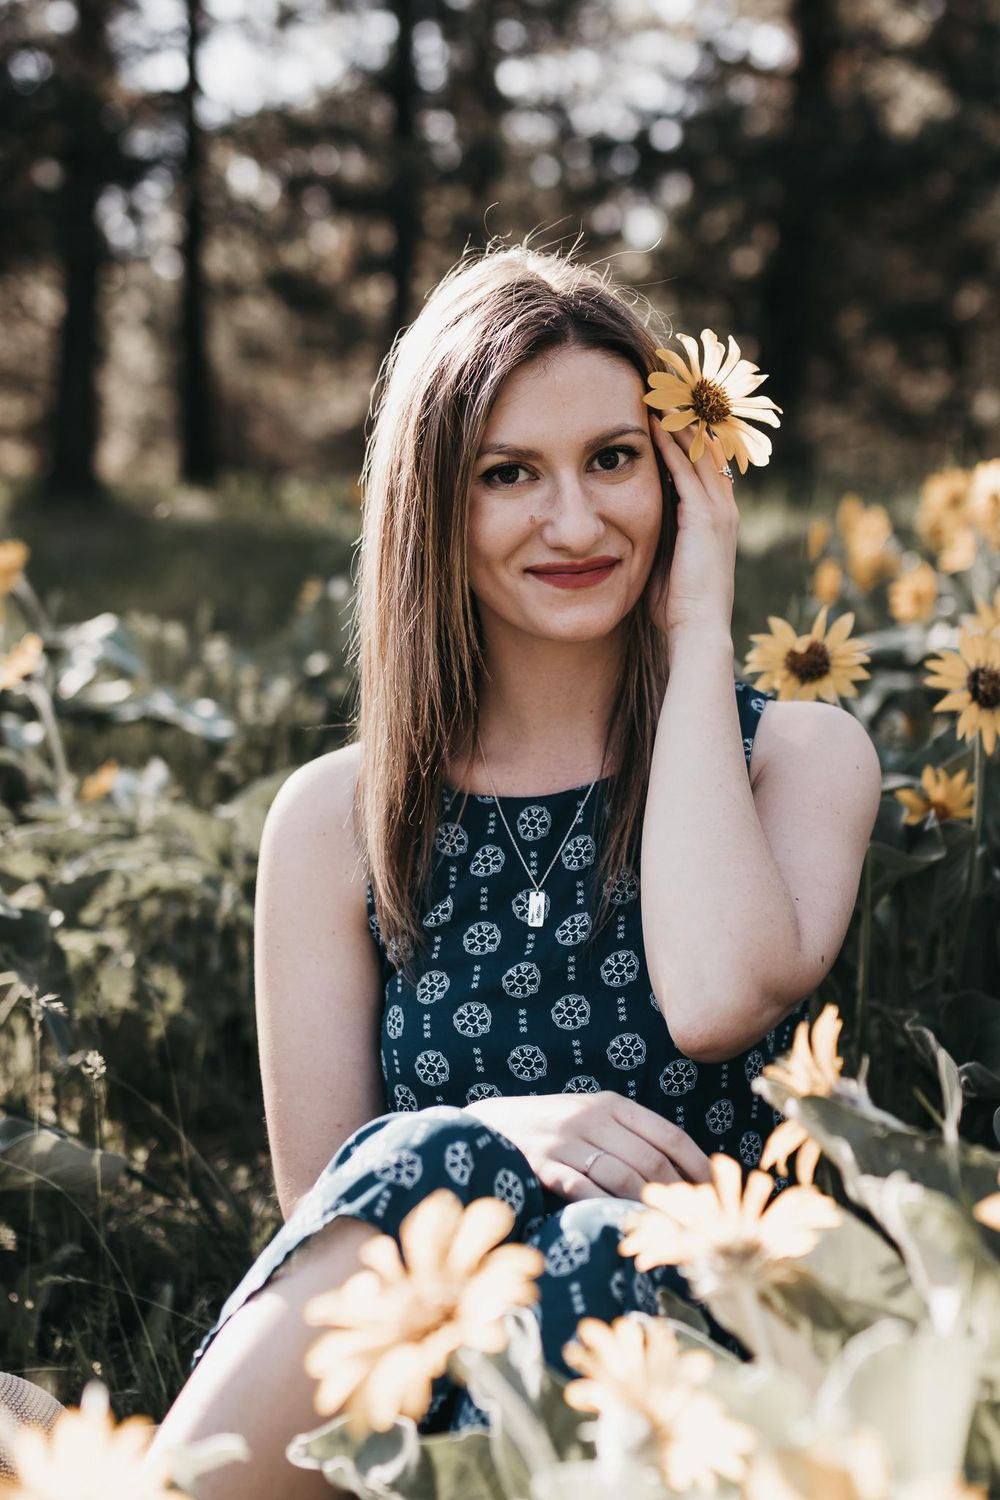 Spring Portraits - image 1 - student project